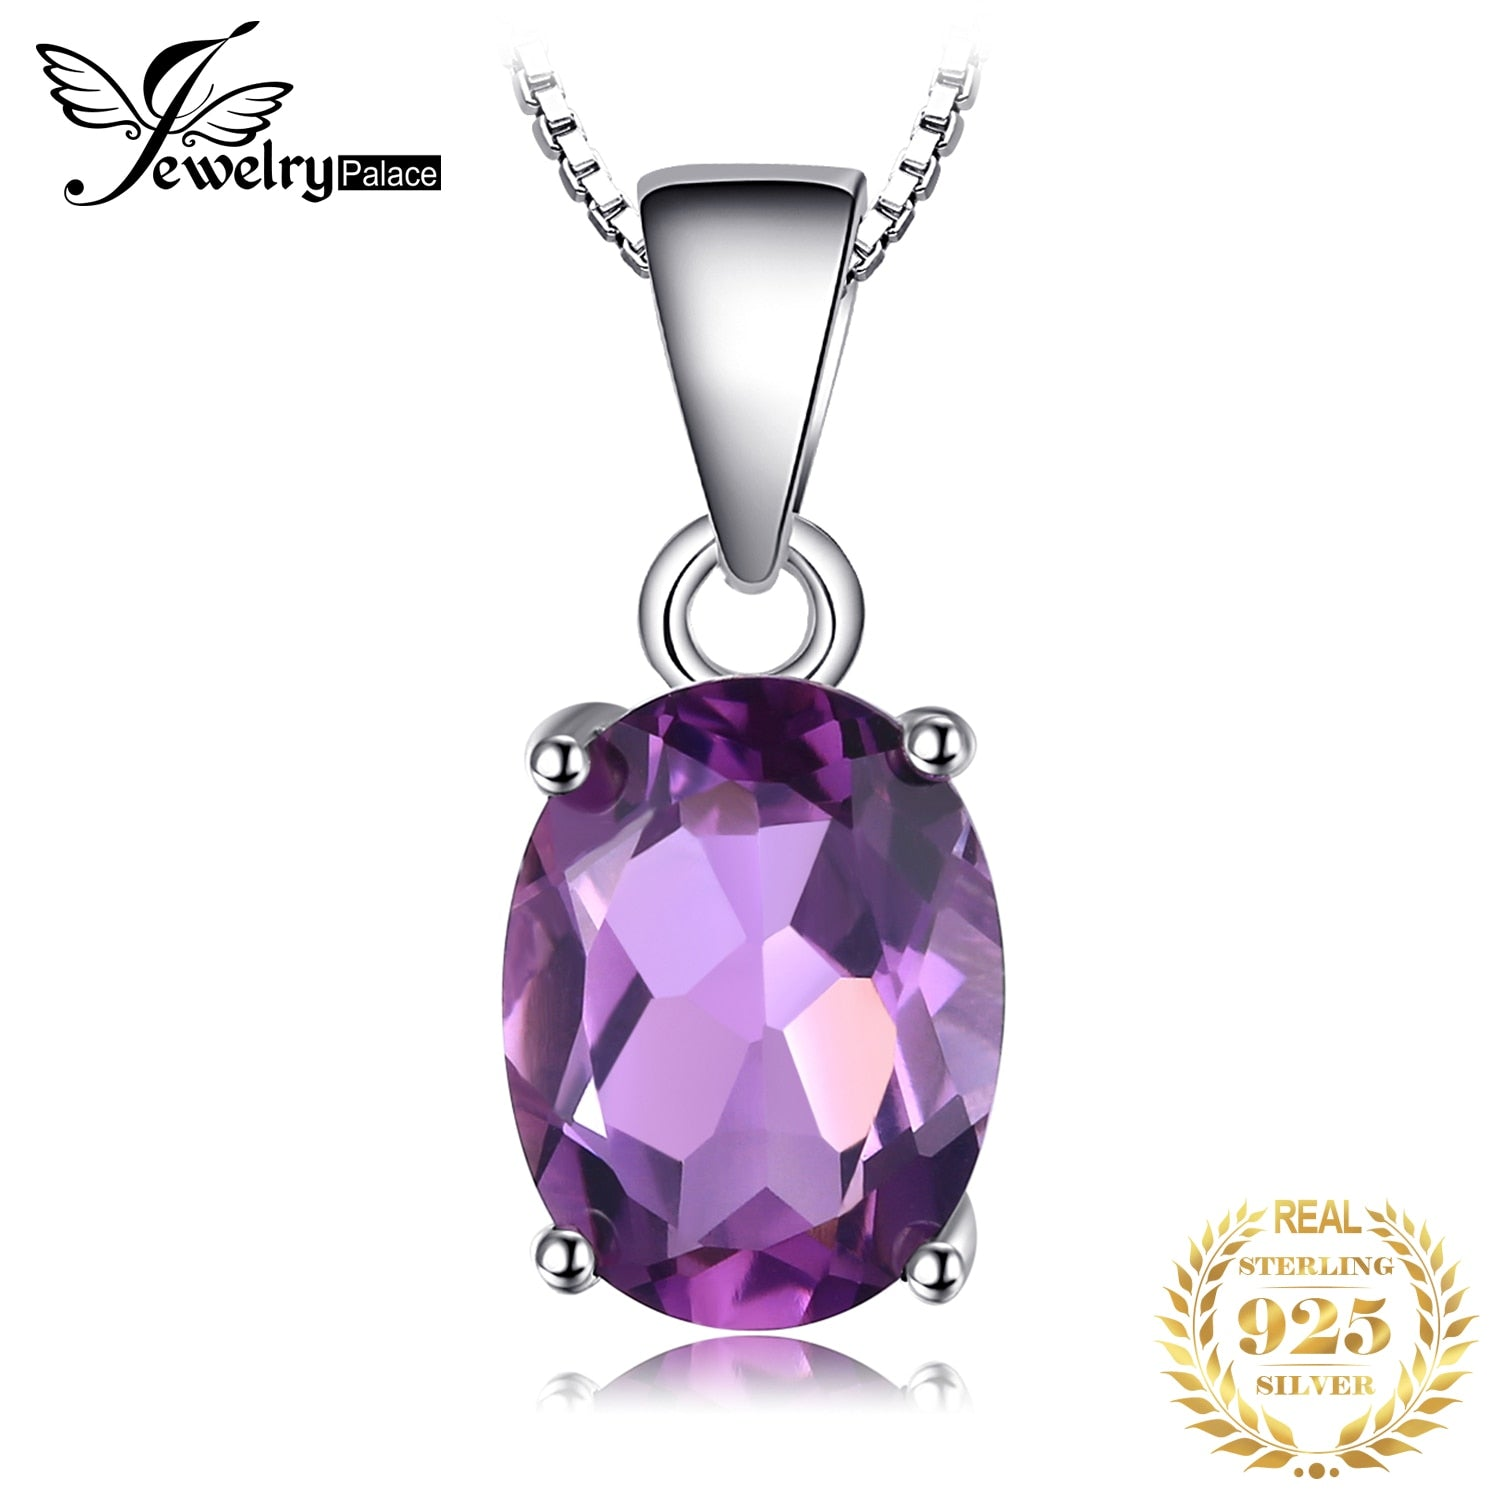 Natural Amethyst Pendant Necklace 925 Sterling Silver Gemstone Choker Statement Necklace Women silver 925 Jewelry Without Chain - My Accessory